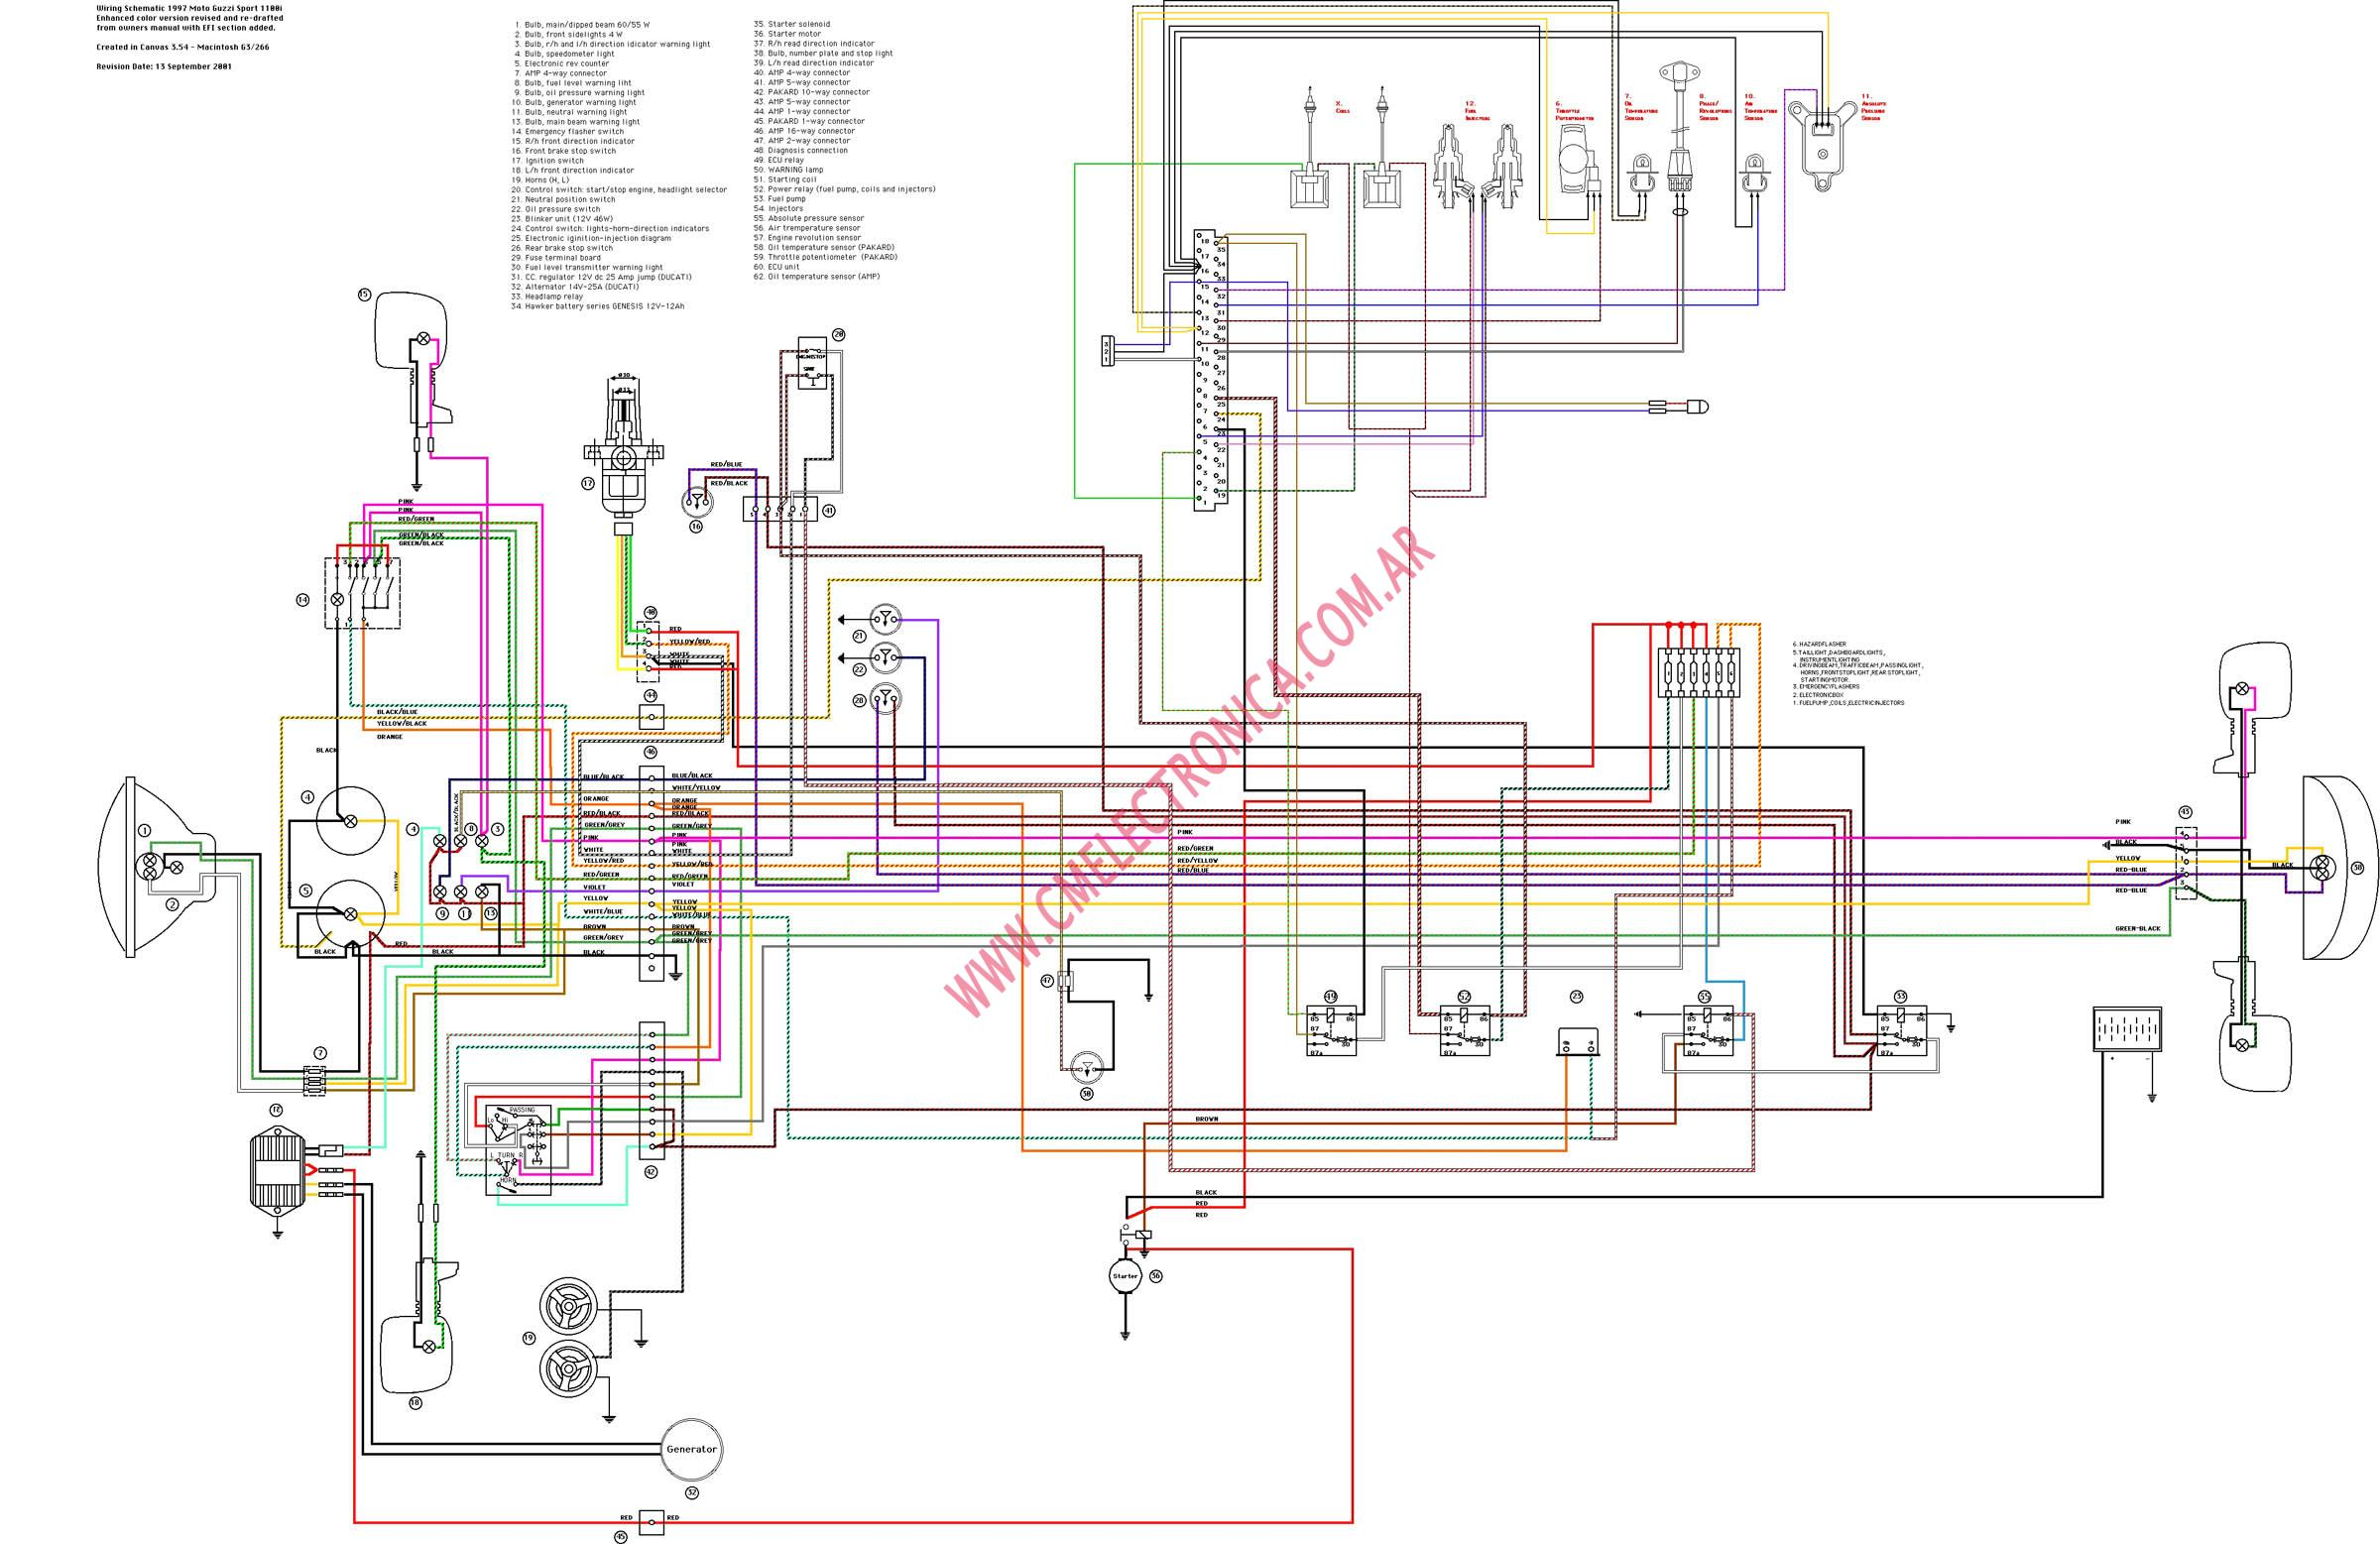 2003 Kawasaki Zx12 Wiring Diagram Will Be A Thing Zx9r Free Picture Schematic 2000 Zx9 Zx1200 Z900